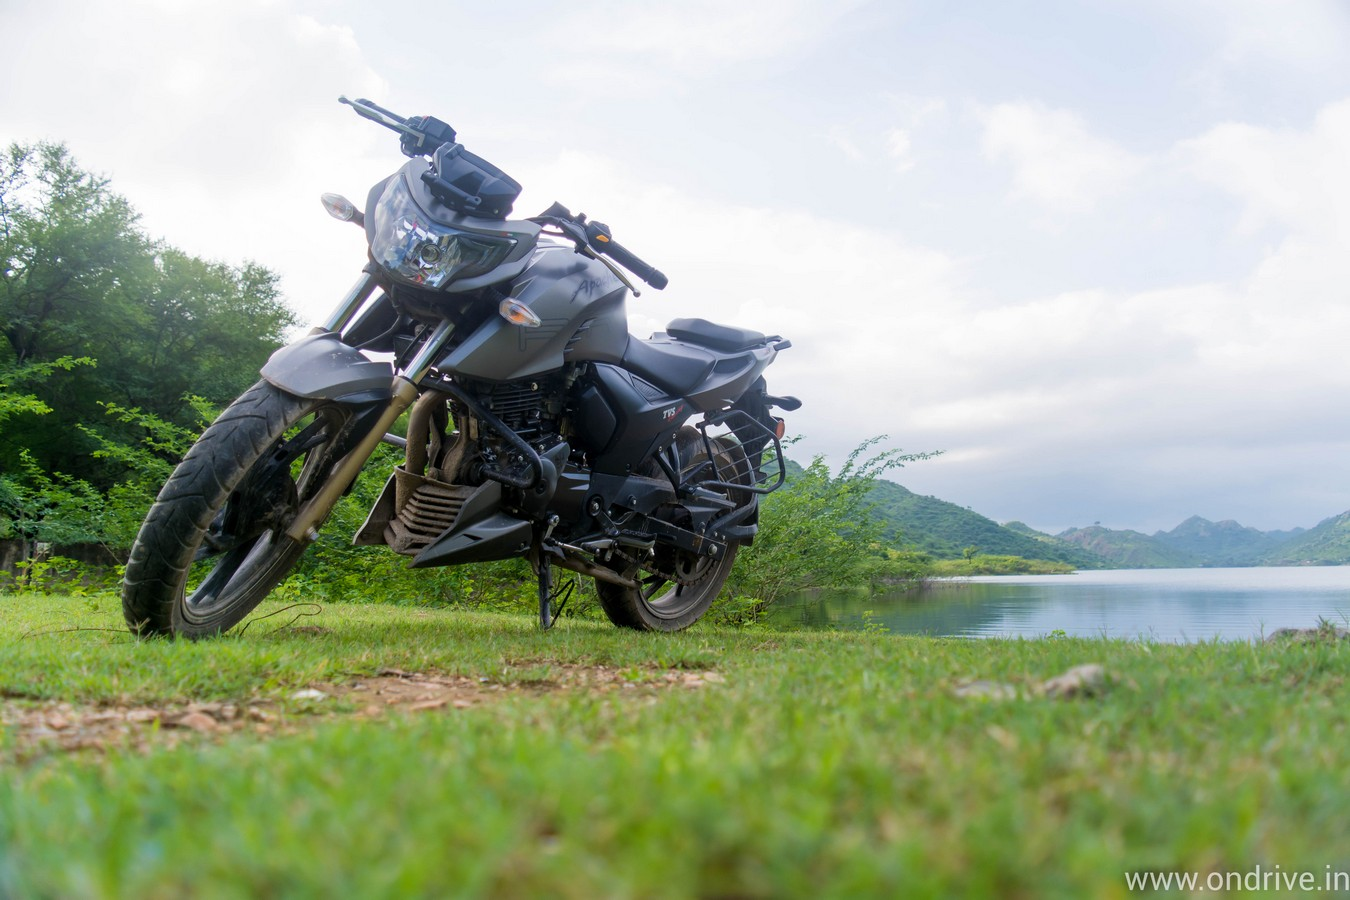 TVS Apache RTR 200 4V Review - Value for Money